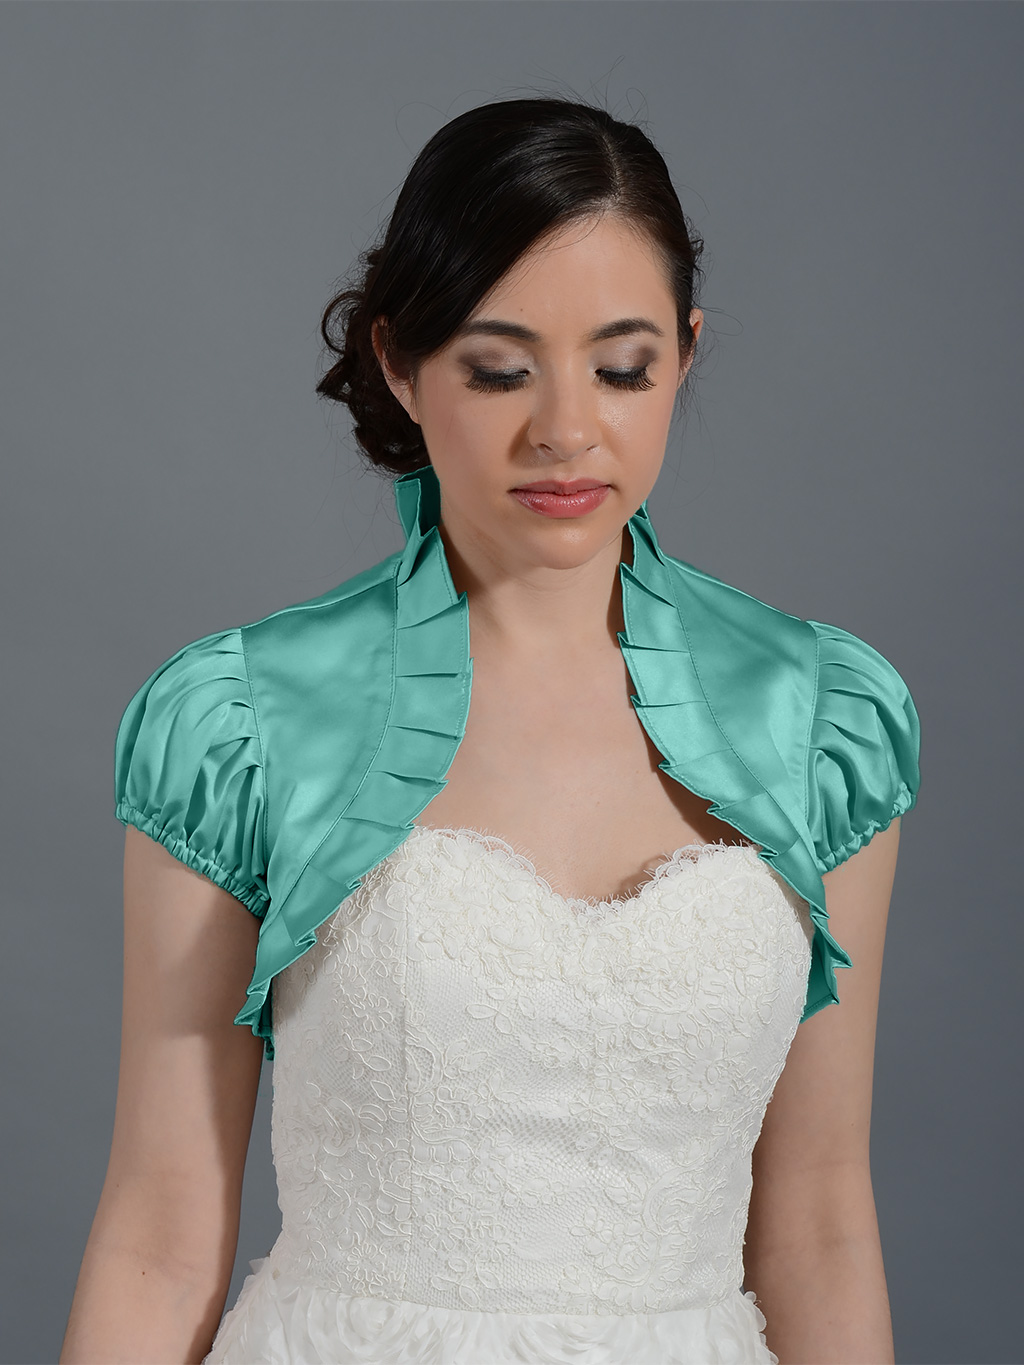 Pale Turquoise sleeve wedding satin bolero jacket